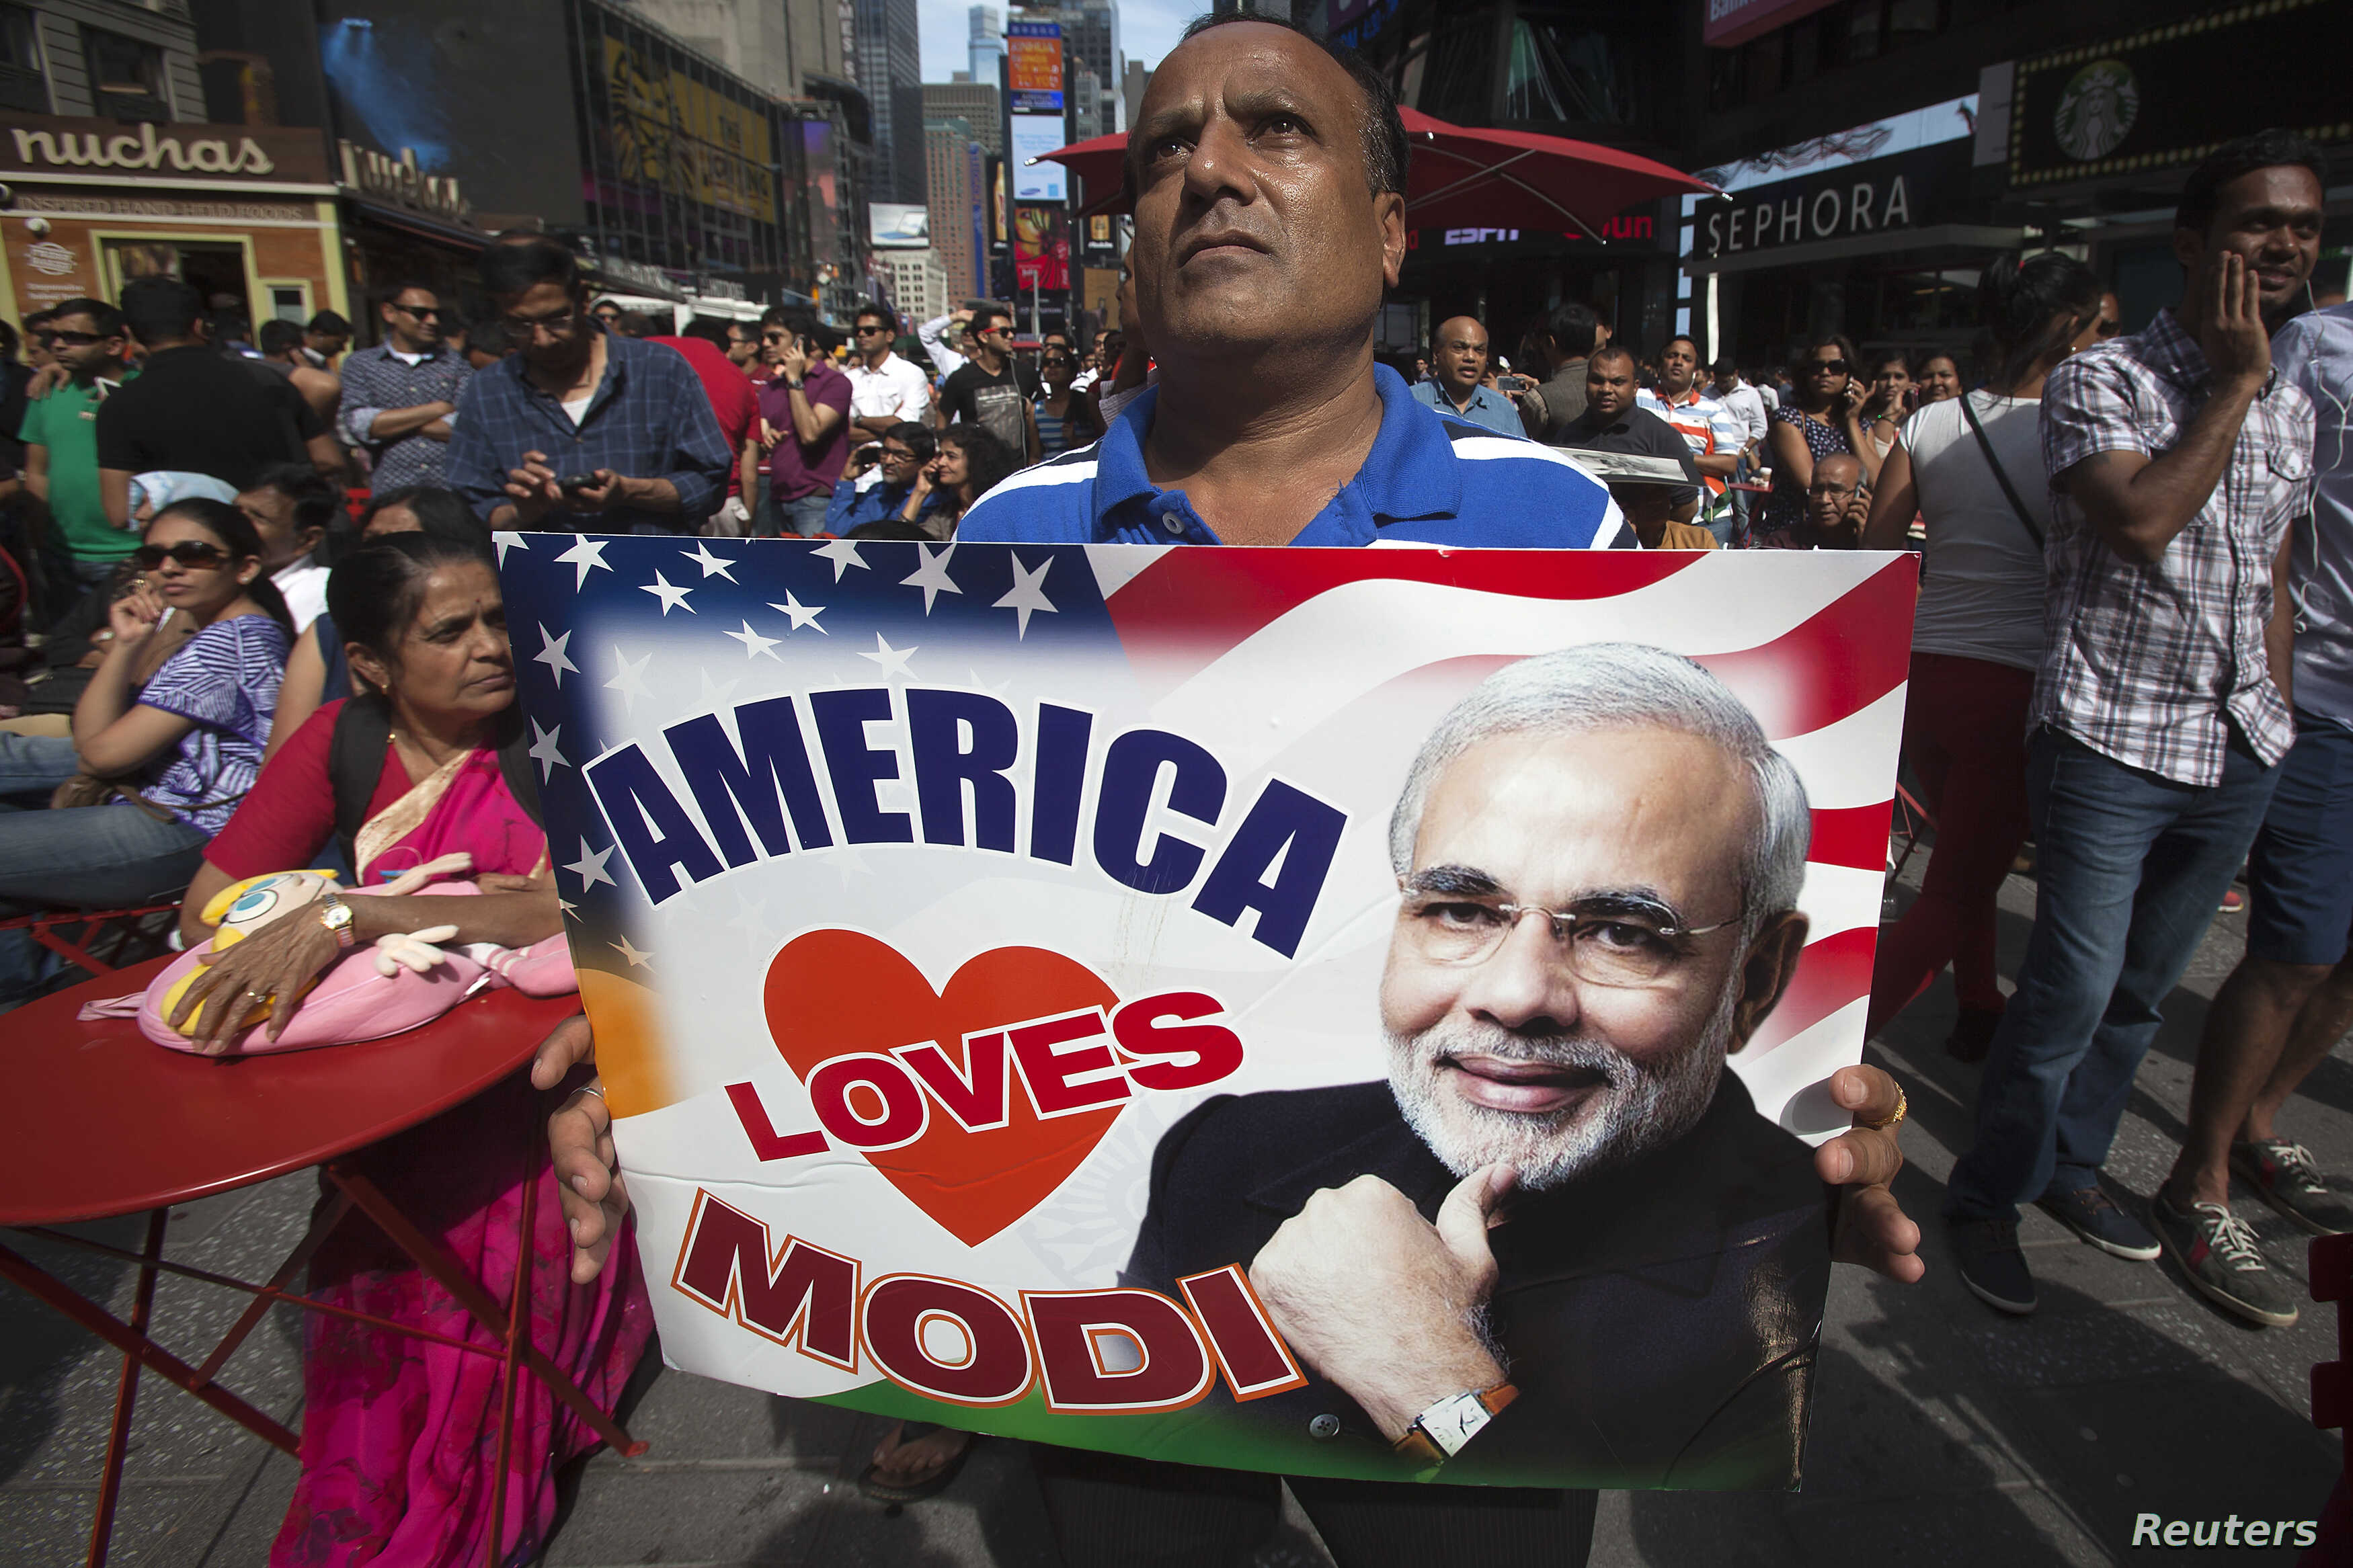 A supporter hold up an America Love Modi sign as he assembles with a large crowd of people in Times Square to watch the speech by India's Prime Minister Narendra Modi simulcast on a giant screen in New York September 28, 2014.    REUTERS/Carlo Allegr